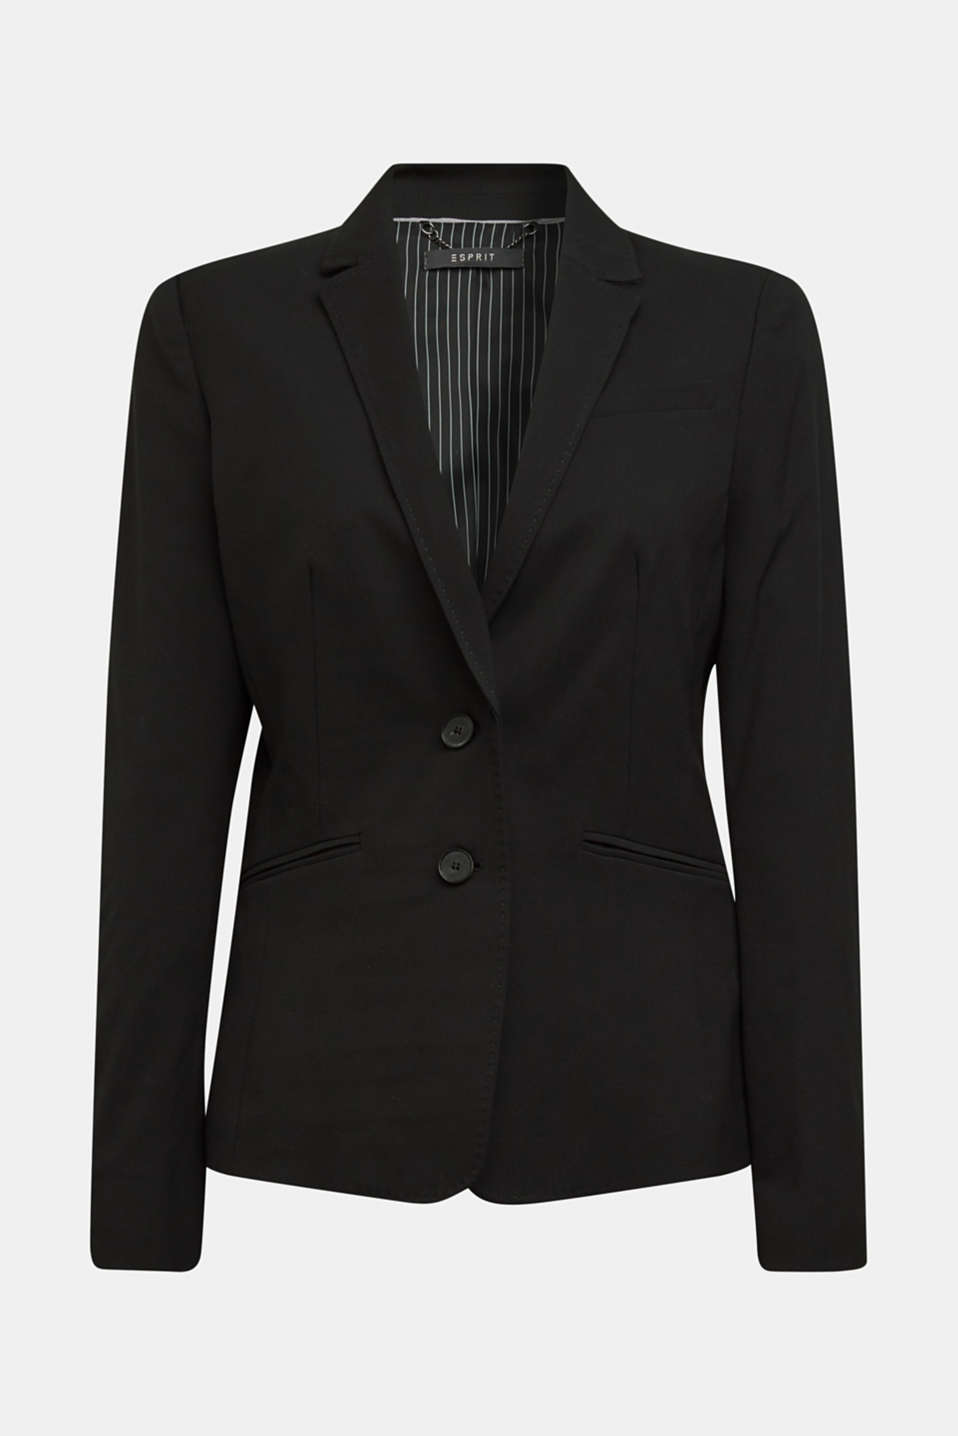 PURE BUSINESS mix + match blazer, BLACK, detail image number 7